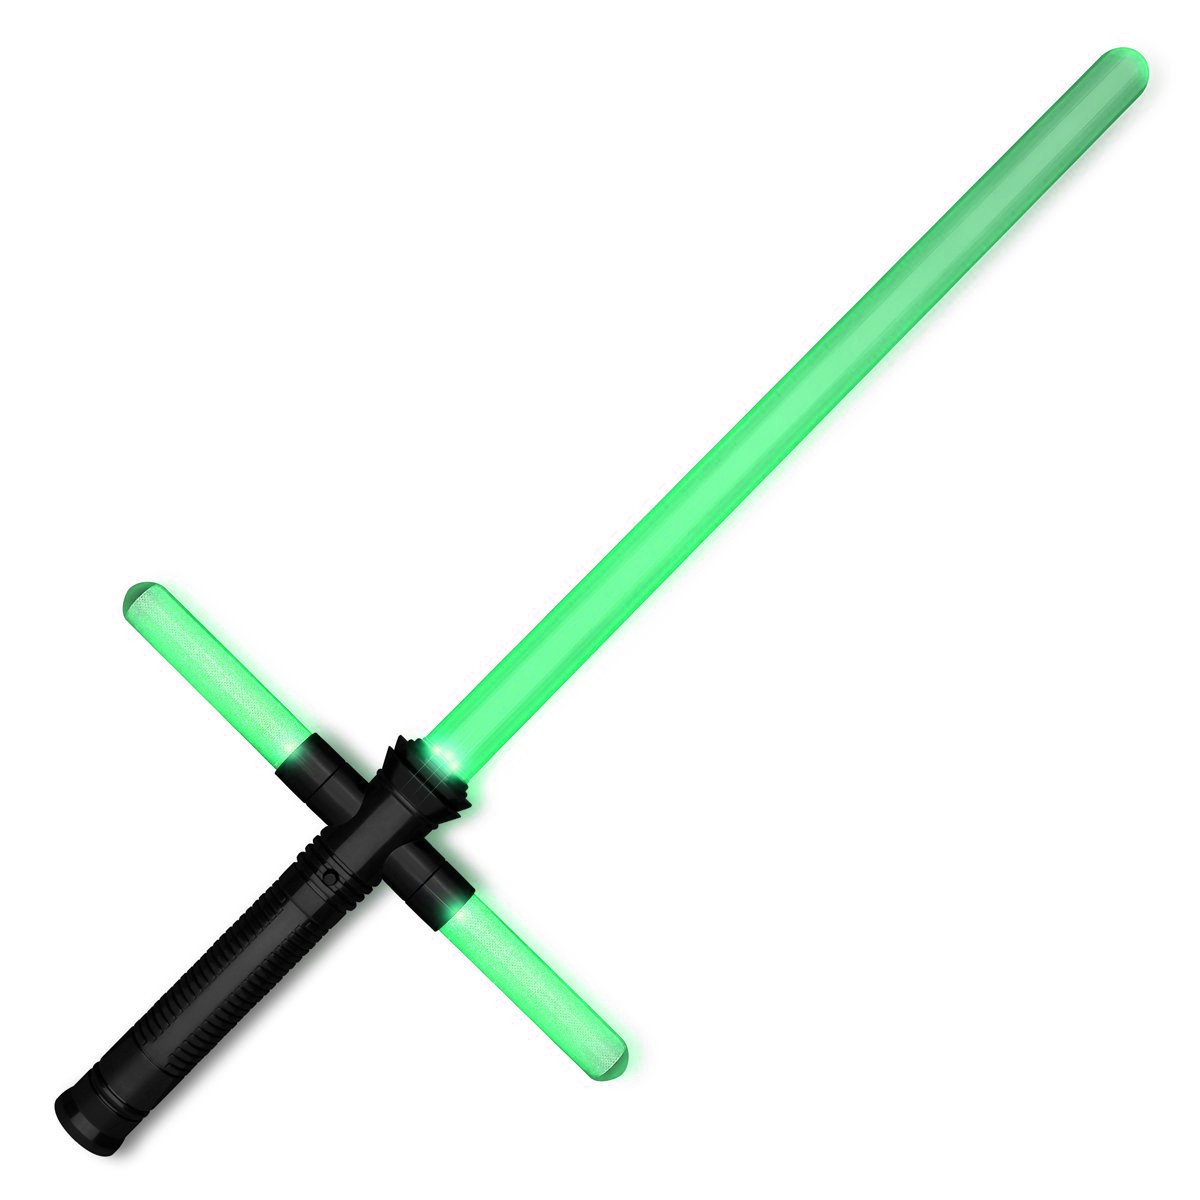 Star Wars Cross Guard Lightsaber Green All Products